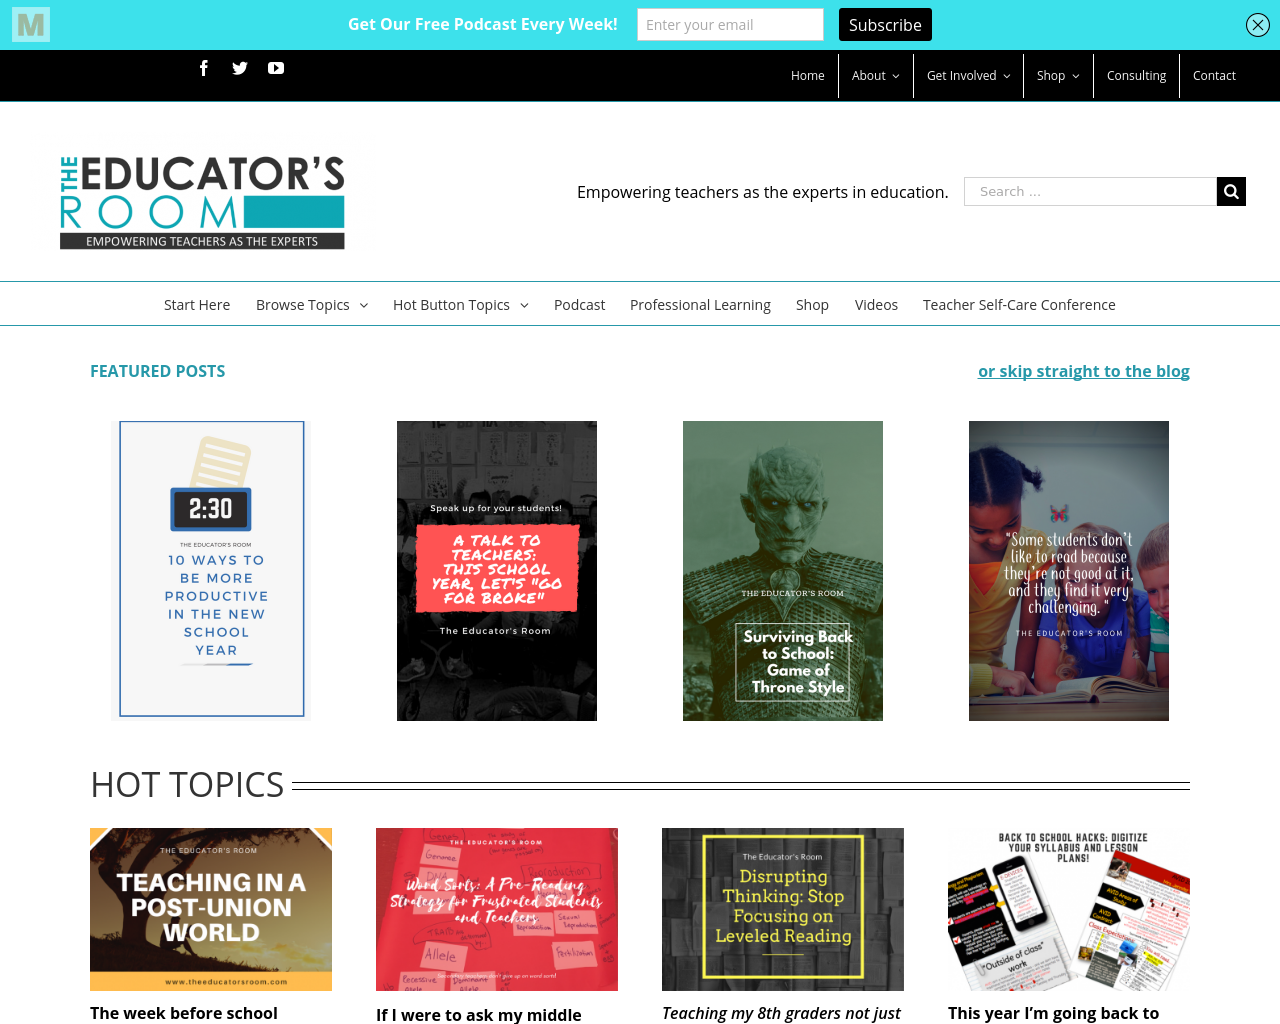 THE-EDUCATOR'S-ROOM-Advertising-Reviews-Pricing